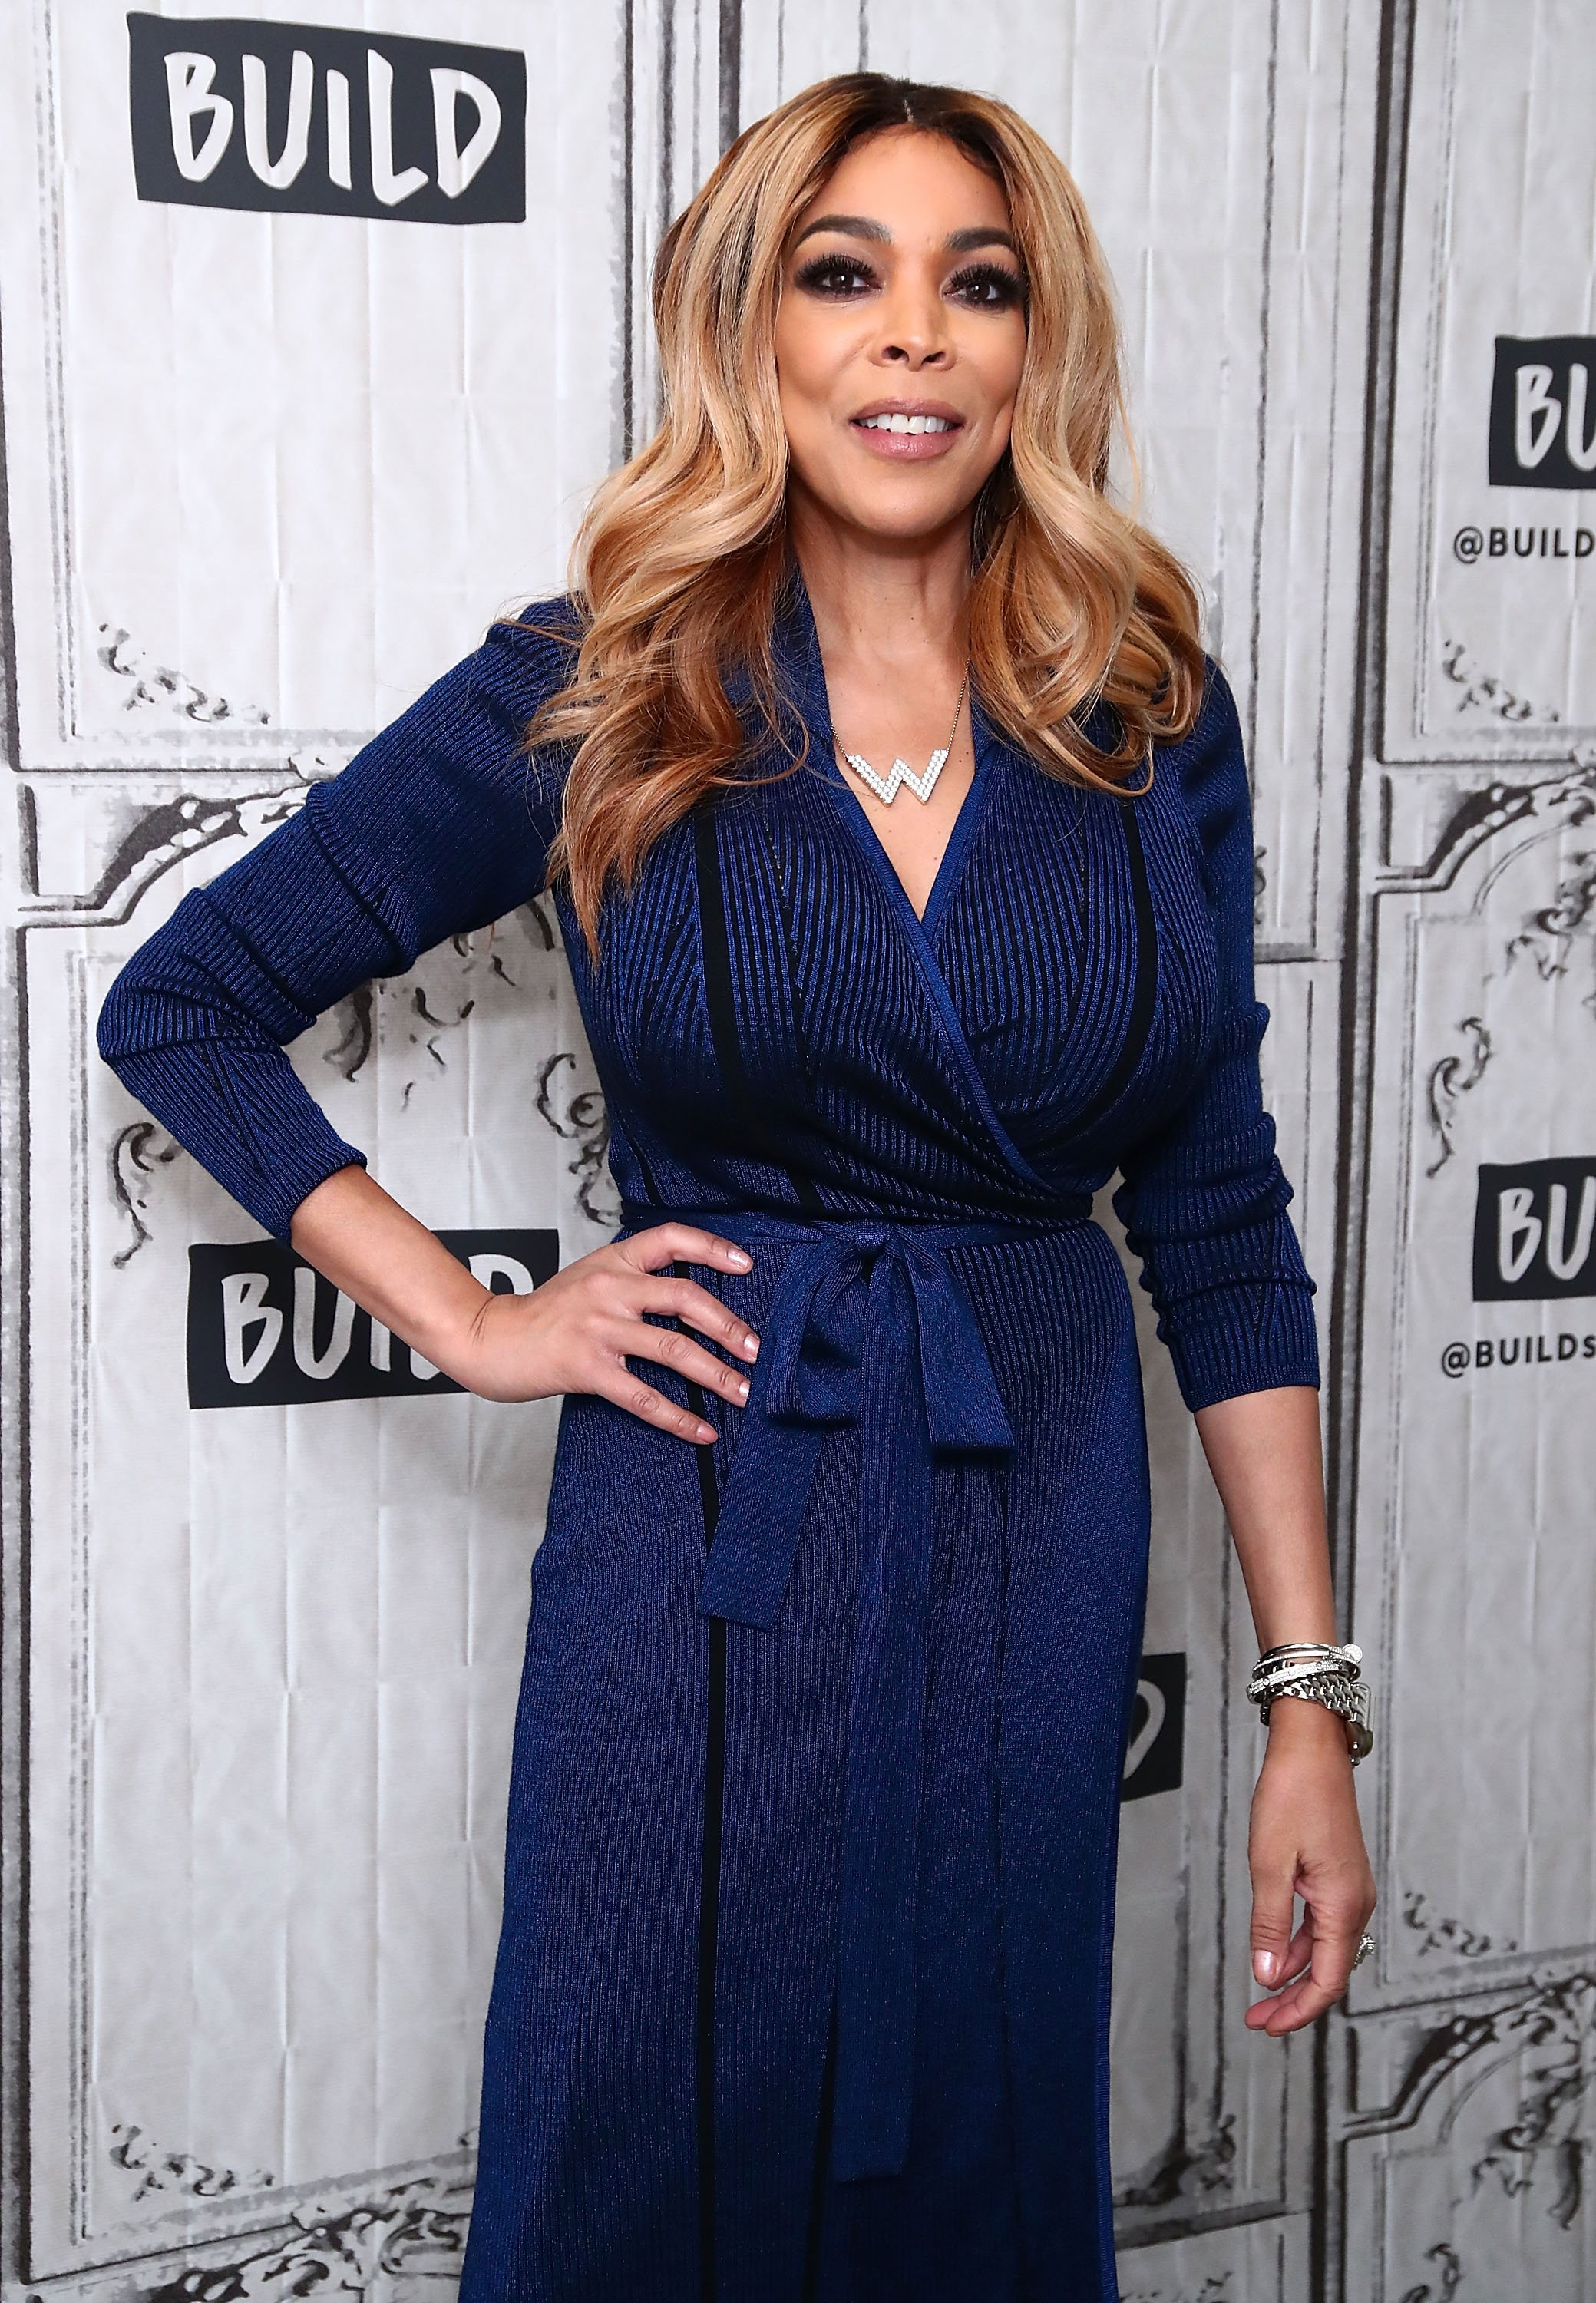 Wendy Williams at Build Studio on April 17, 2017 in New York City. |Photo: Getty Images